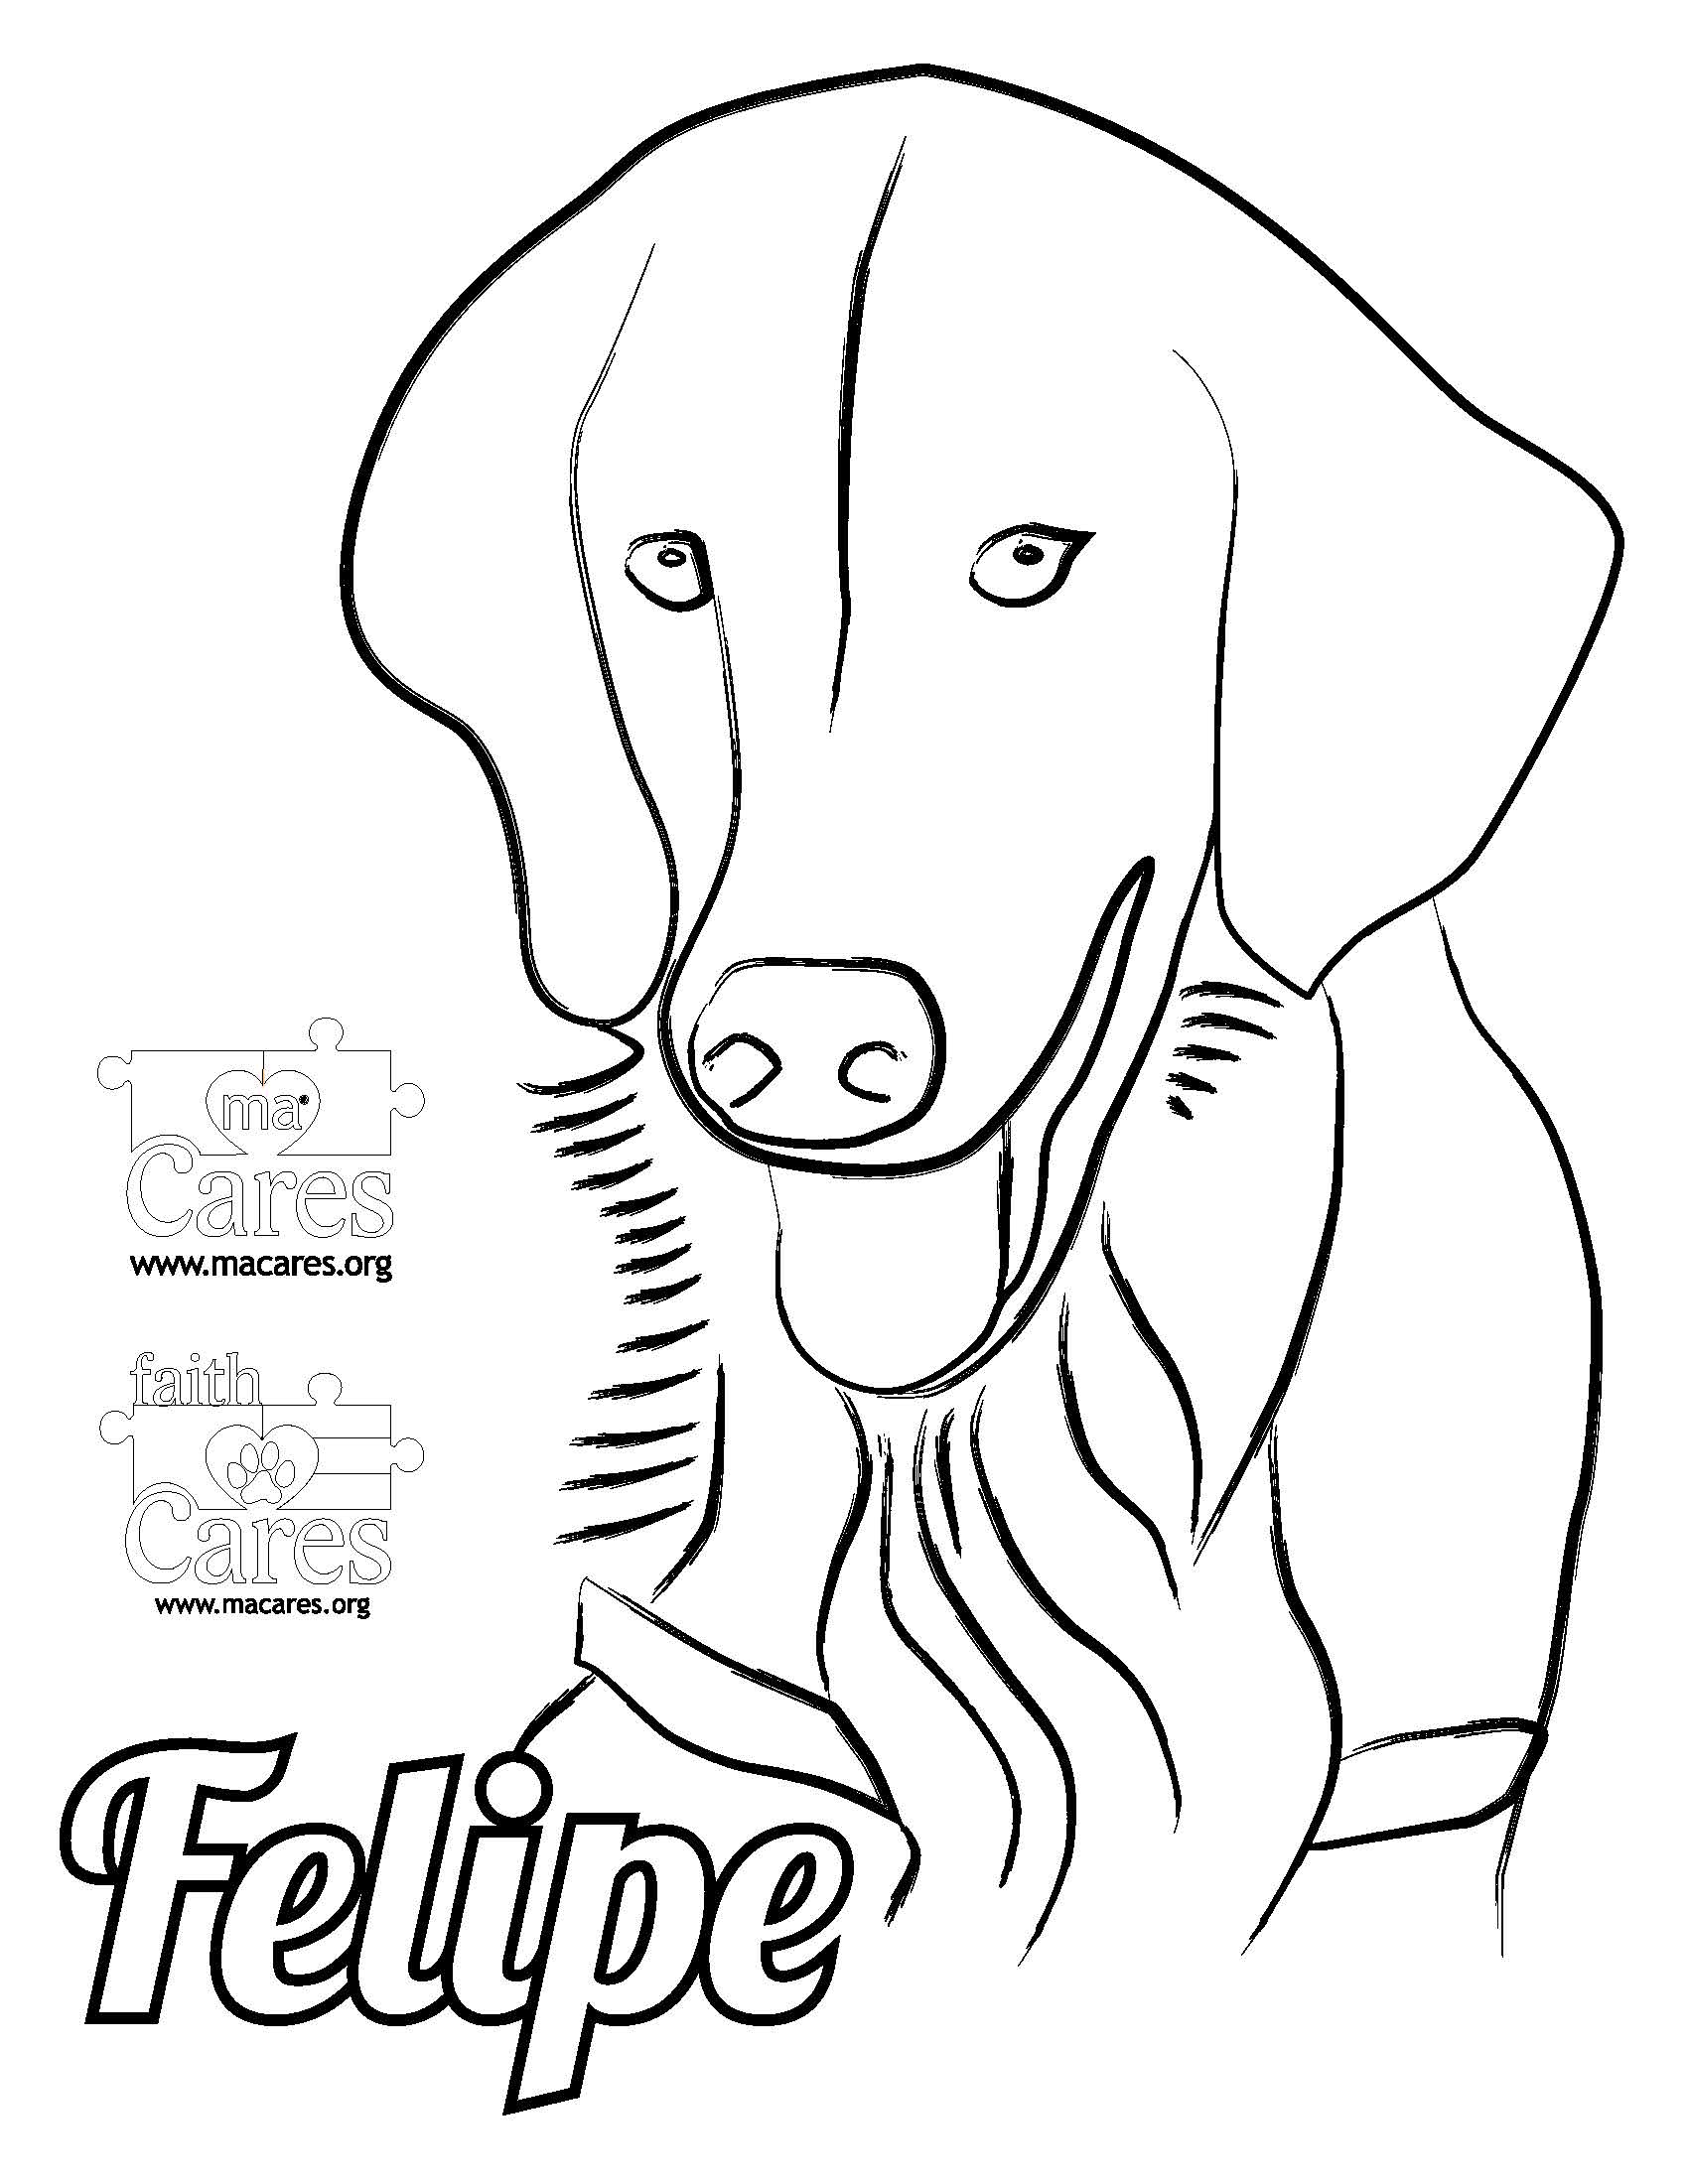 FELIPE faith Cares Service Dog